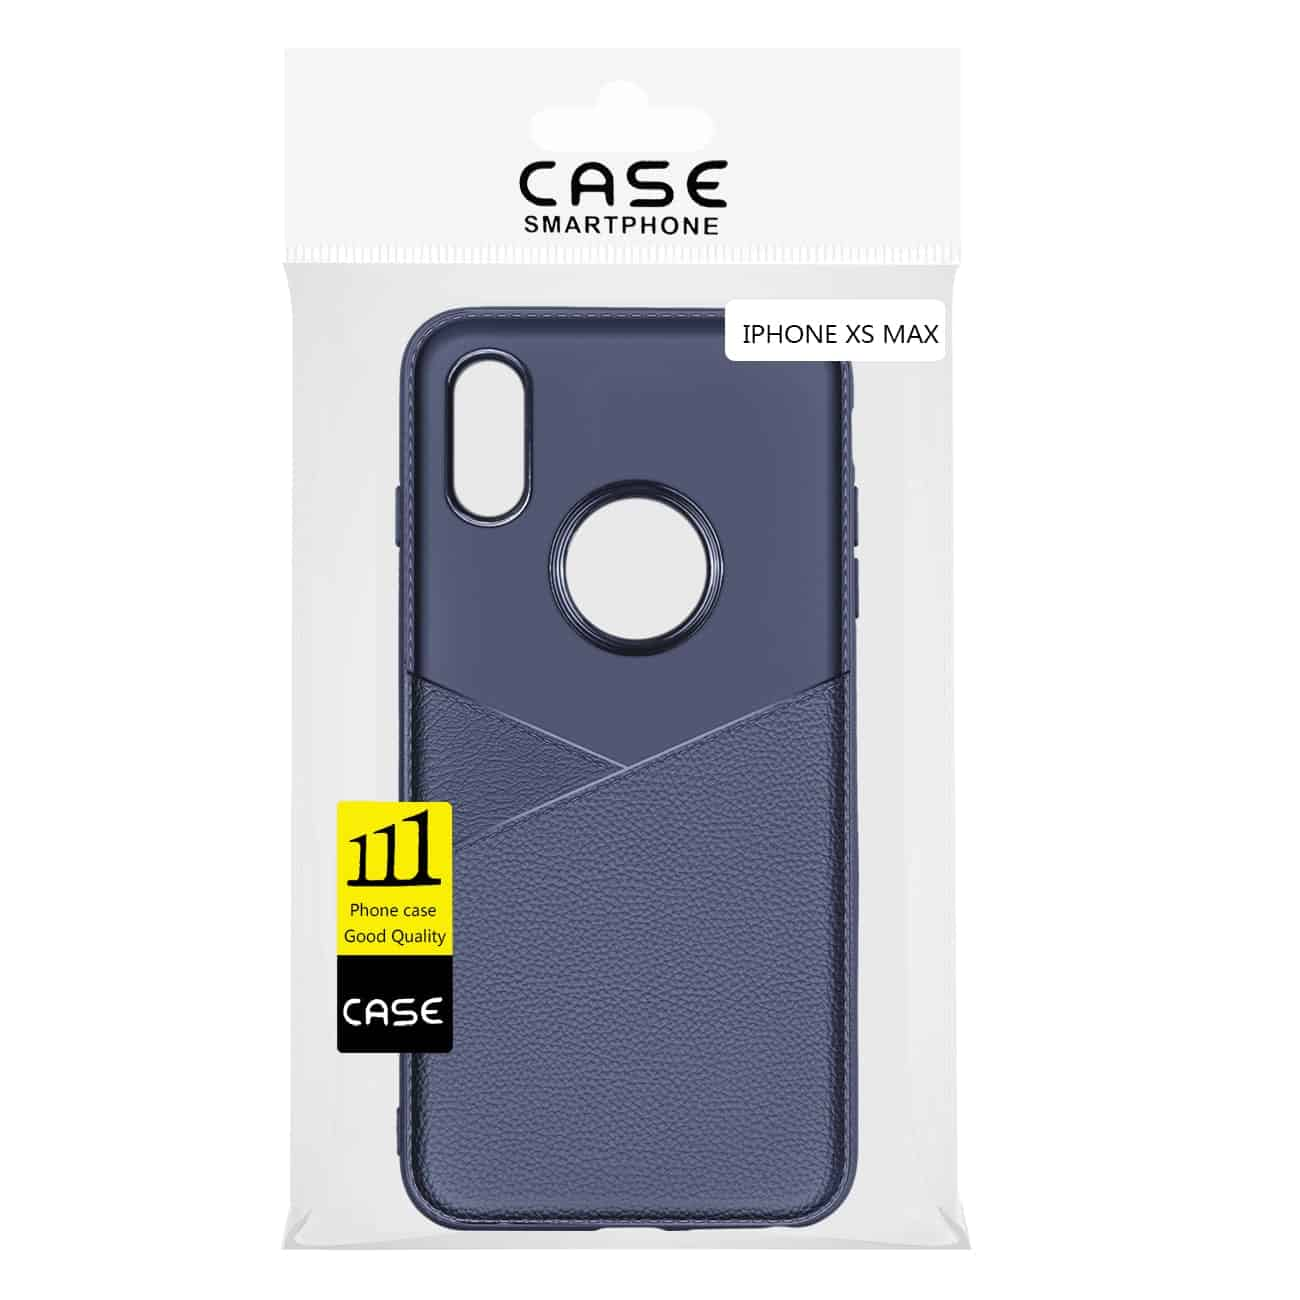 Apple iPhone XS MAX Good quality phone case in Blue